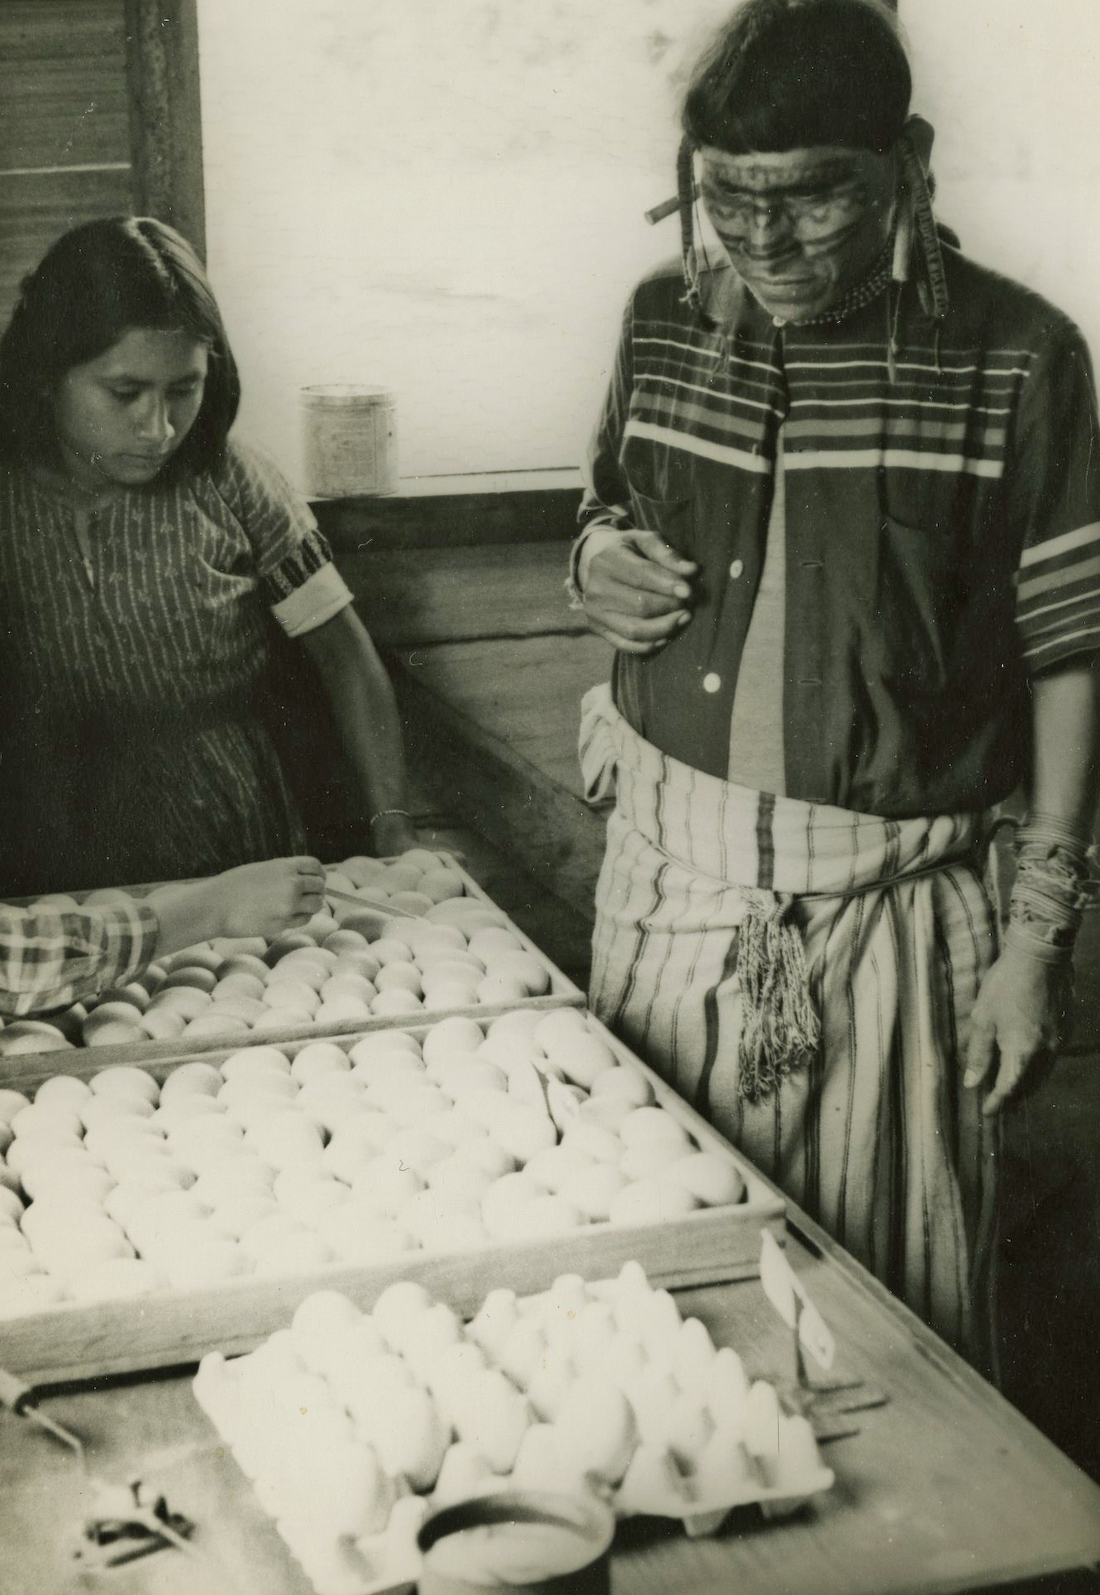 Two native Bolivians examine a crate of eggs.